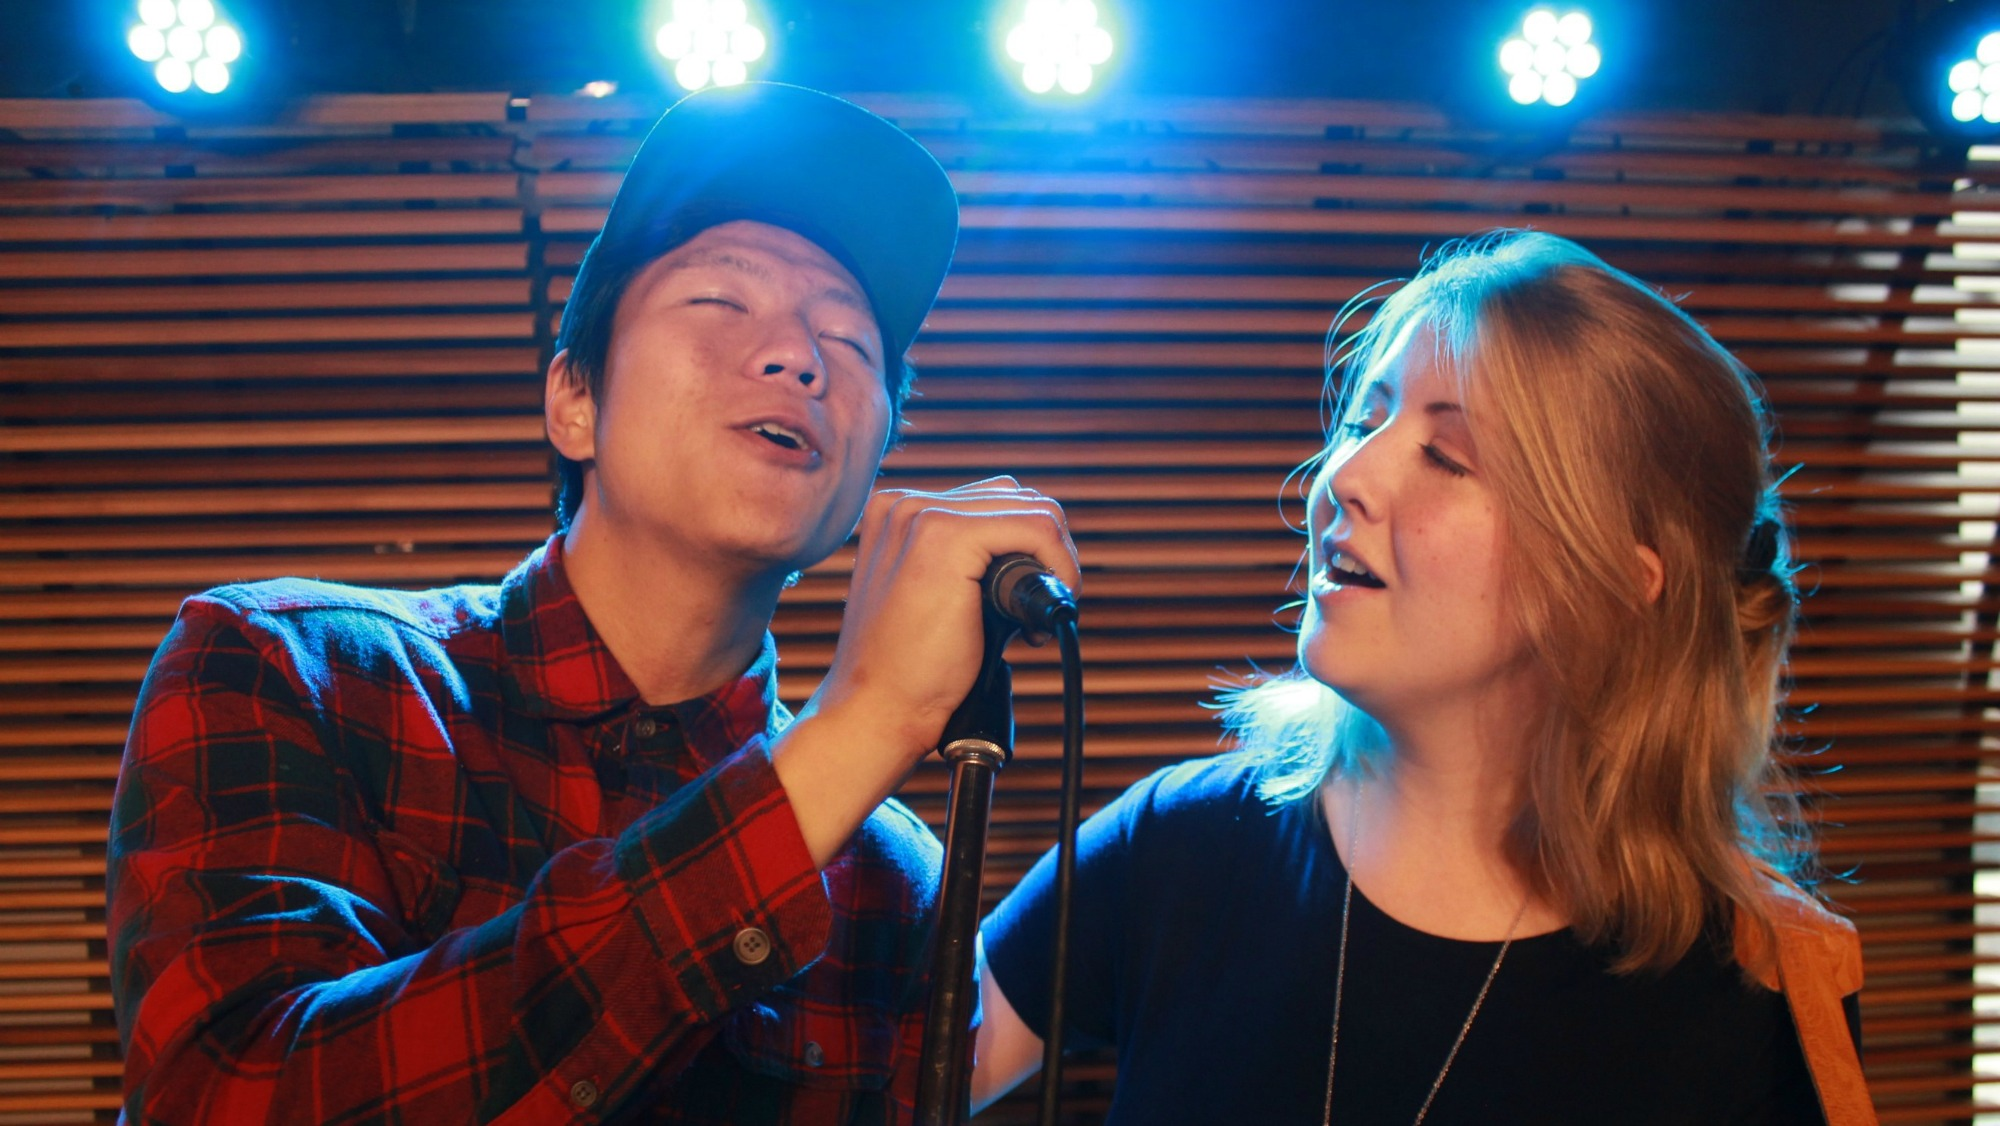 Grawood open mic hosts, Uytae Lee and Claire Attridge, share the stage at the weekly Dalhousie event.